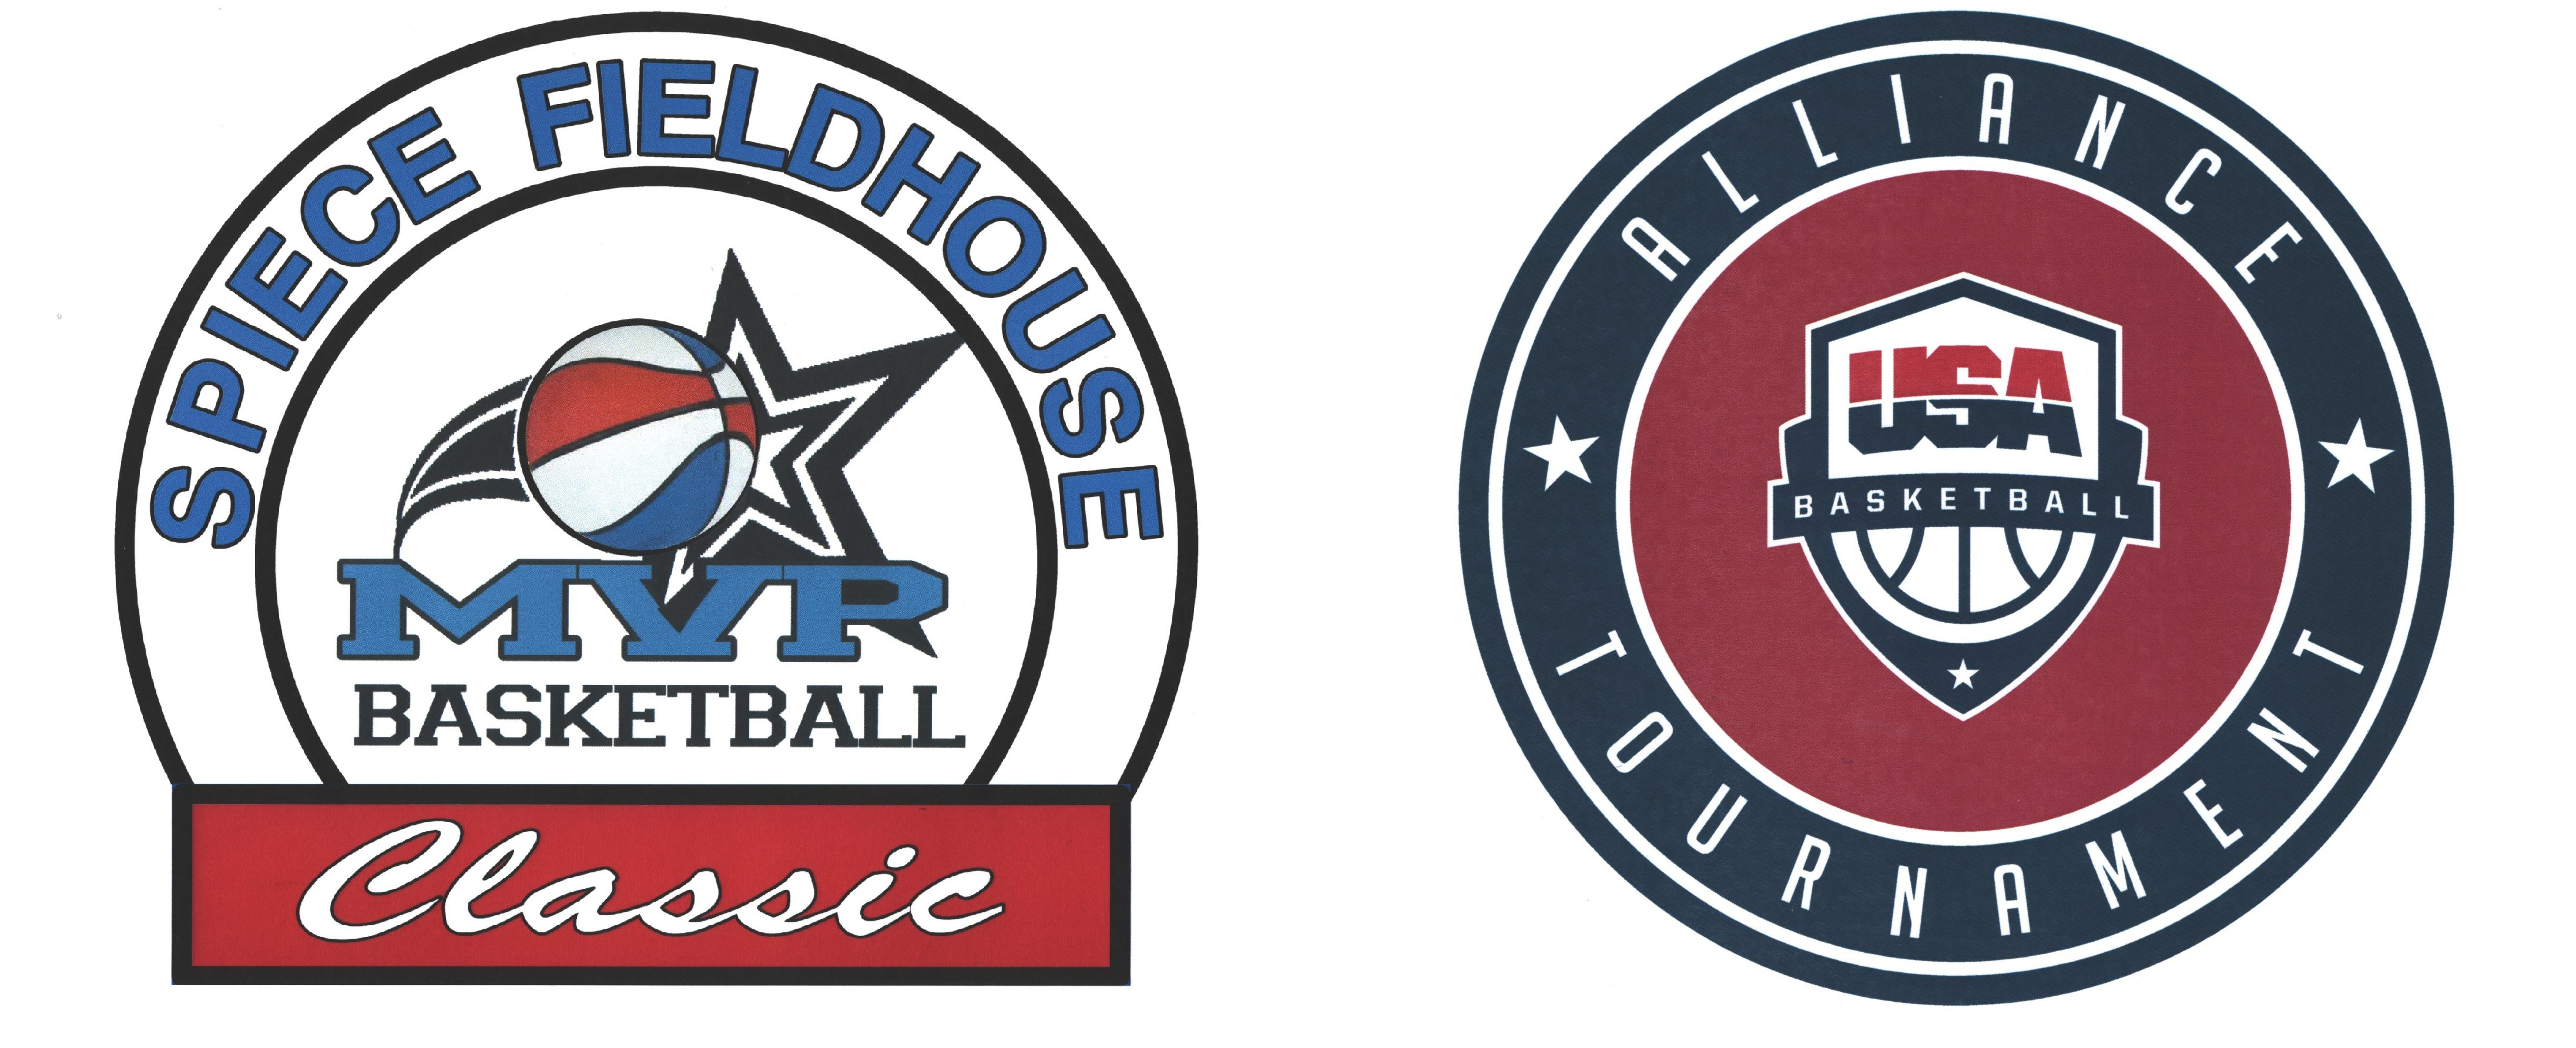 Fieldhouse Classic And Alliance Basketball logos